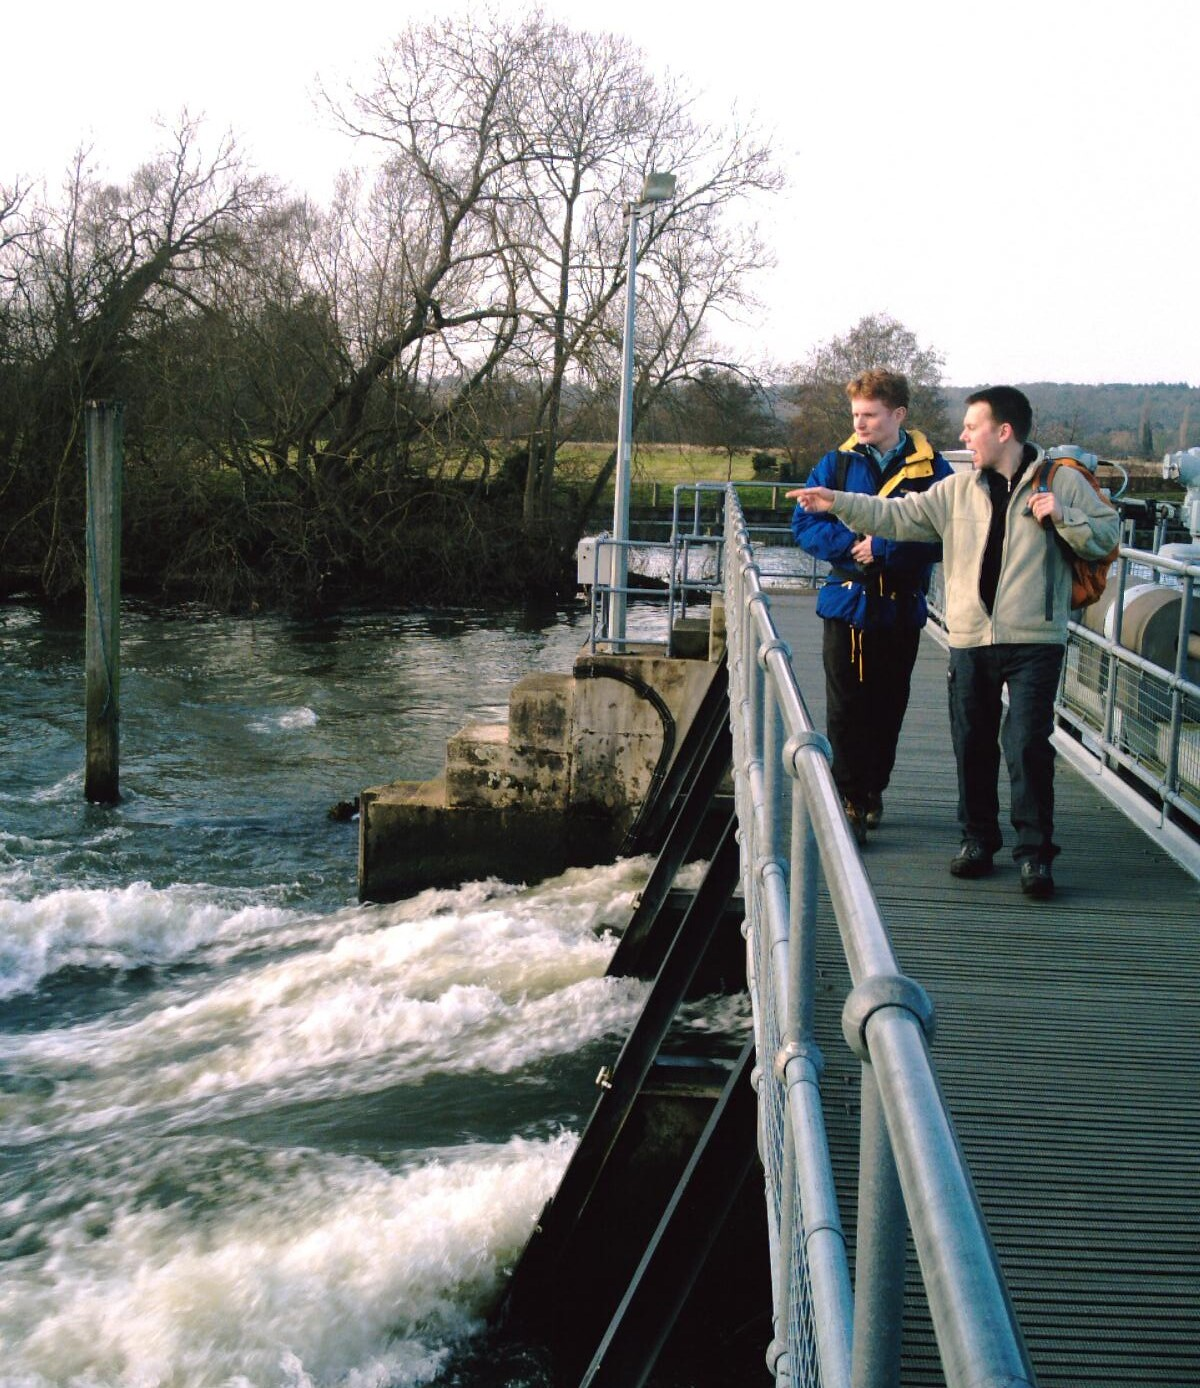 Henley-on-Thames (round walk) The weir at Hambledon Lock. D.Allen vivitar 5199mp